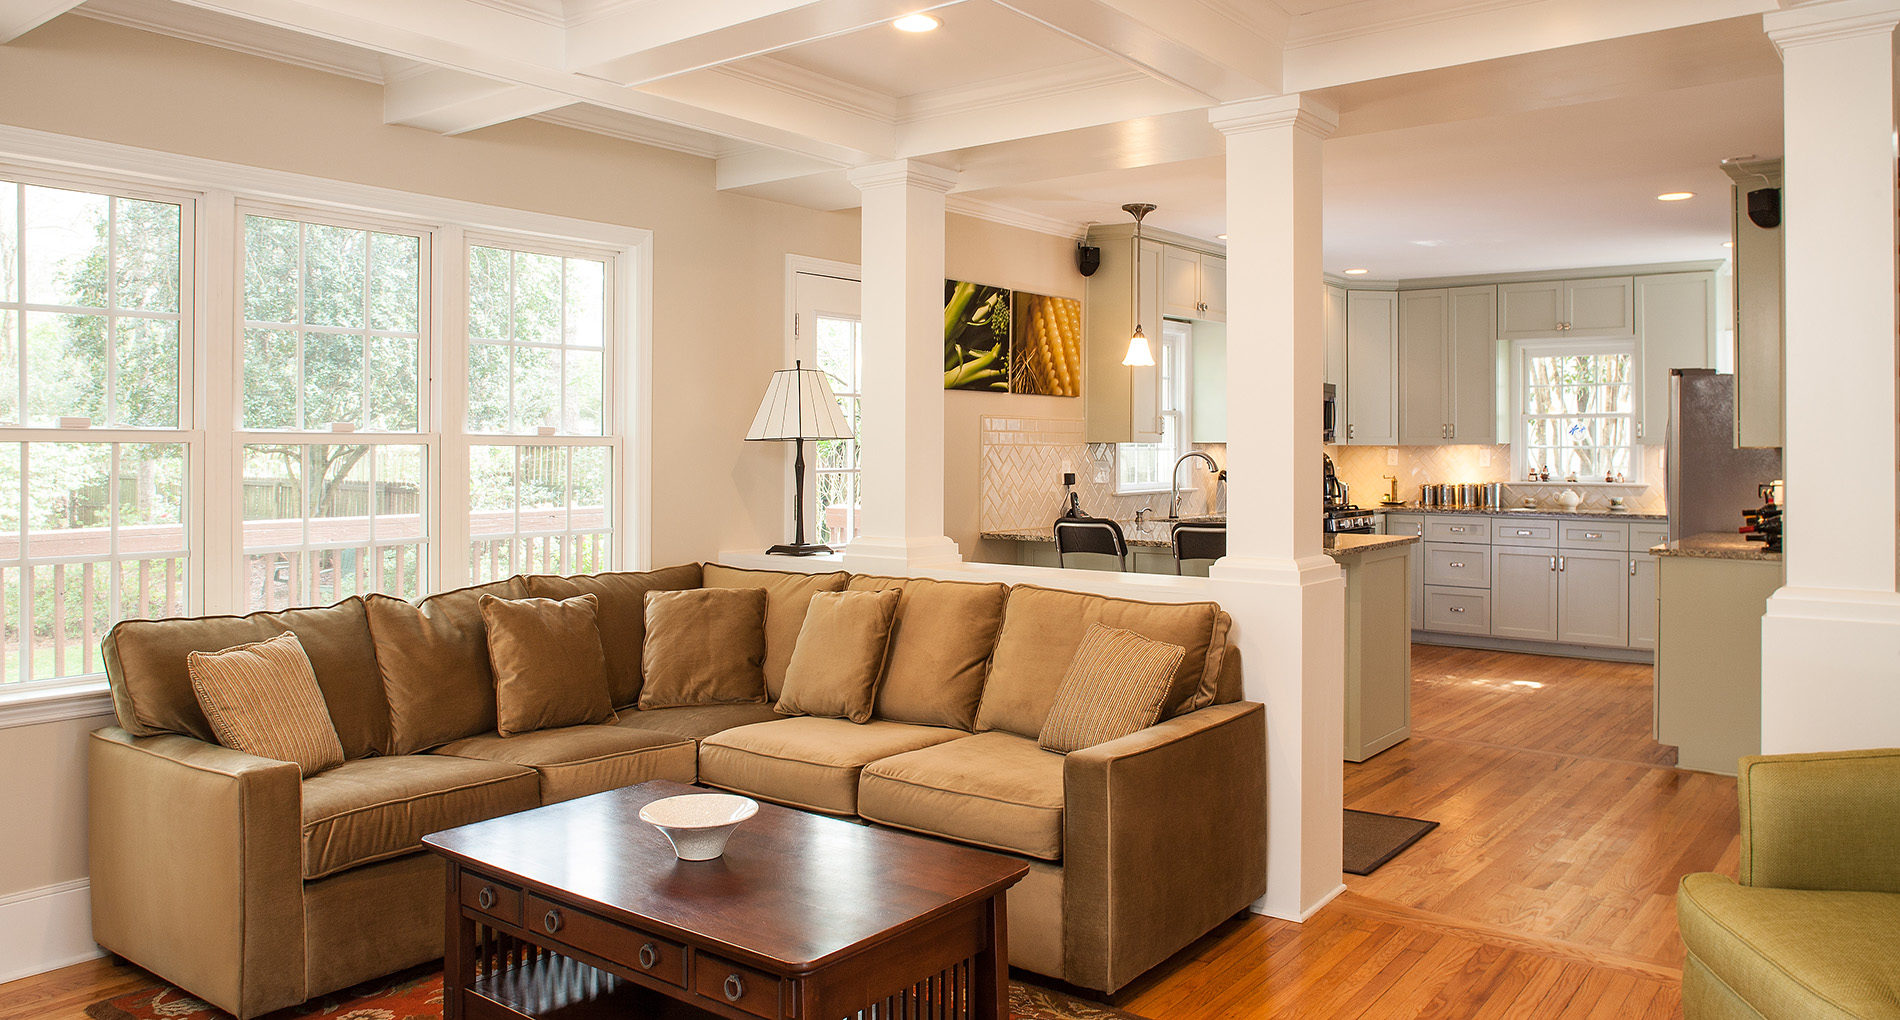 Home Remodeling Renovations In Decatur Ga Alair Homes